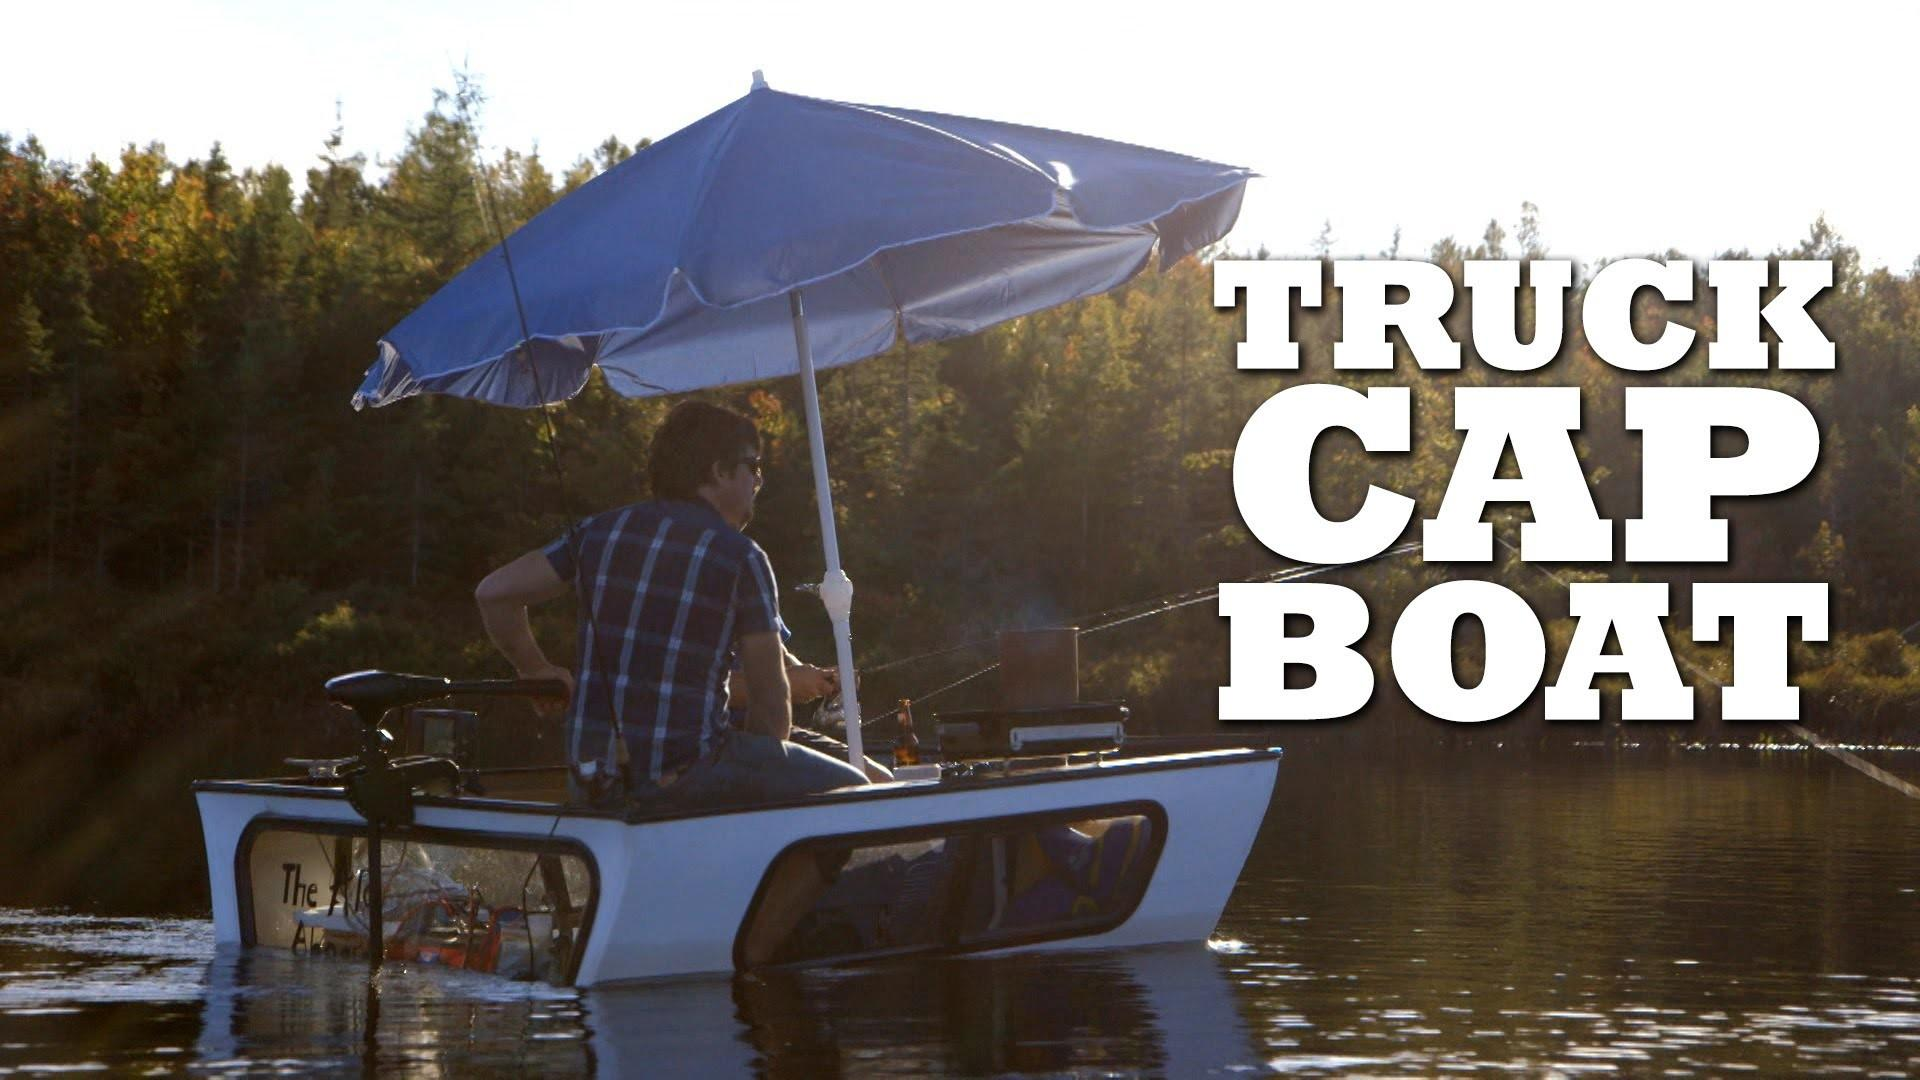 Transform Truck Cap Into Fishing Boat